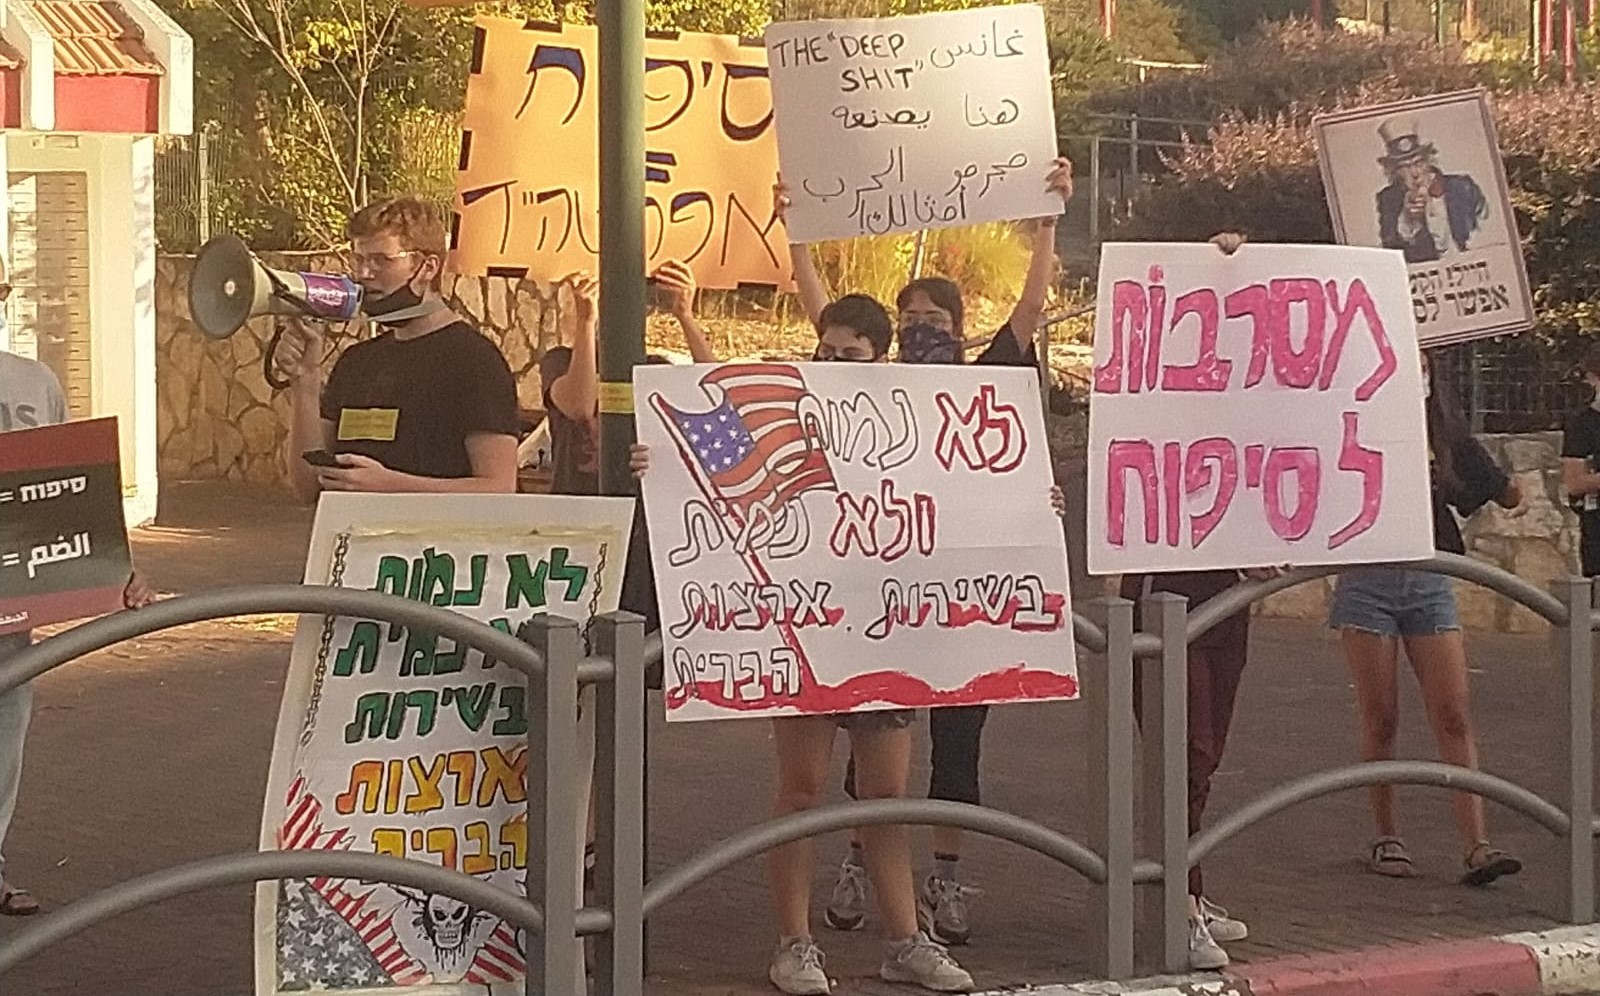 "Members of the group ""Youth against Annexation"" demonstrate near the home of Israel's Minister of Defense, Benny Gantz, in Rosh HaAyin on Thursday, June 25. The placard in Hebrew in the right foreground reads: ""Rejecting Annexation."" The one with the American flag in the center, like that to the left reads: ""We won't die and we won't kill in the service of the United States."" The sign in Arabic (and English) held aloft in the center echoes the American profanity Gantz used earlier in the week when referring to the situation the Palestinians have allegedly made for themselves by refusing to enter into a dialog regarding the looming annexation, and reads: ""The 'deep s**t' made here by war criminals like you is receding!"""